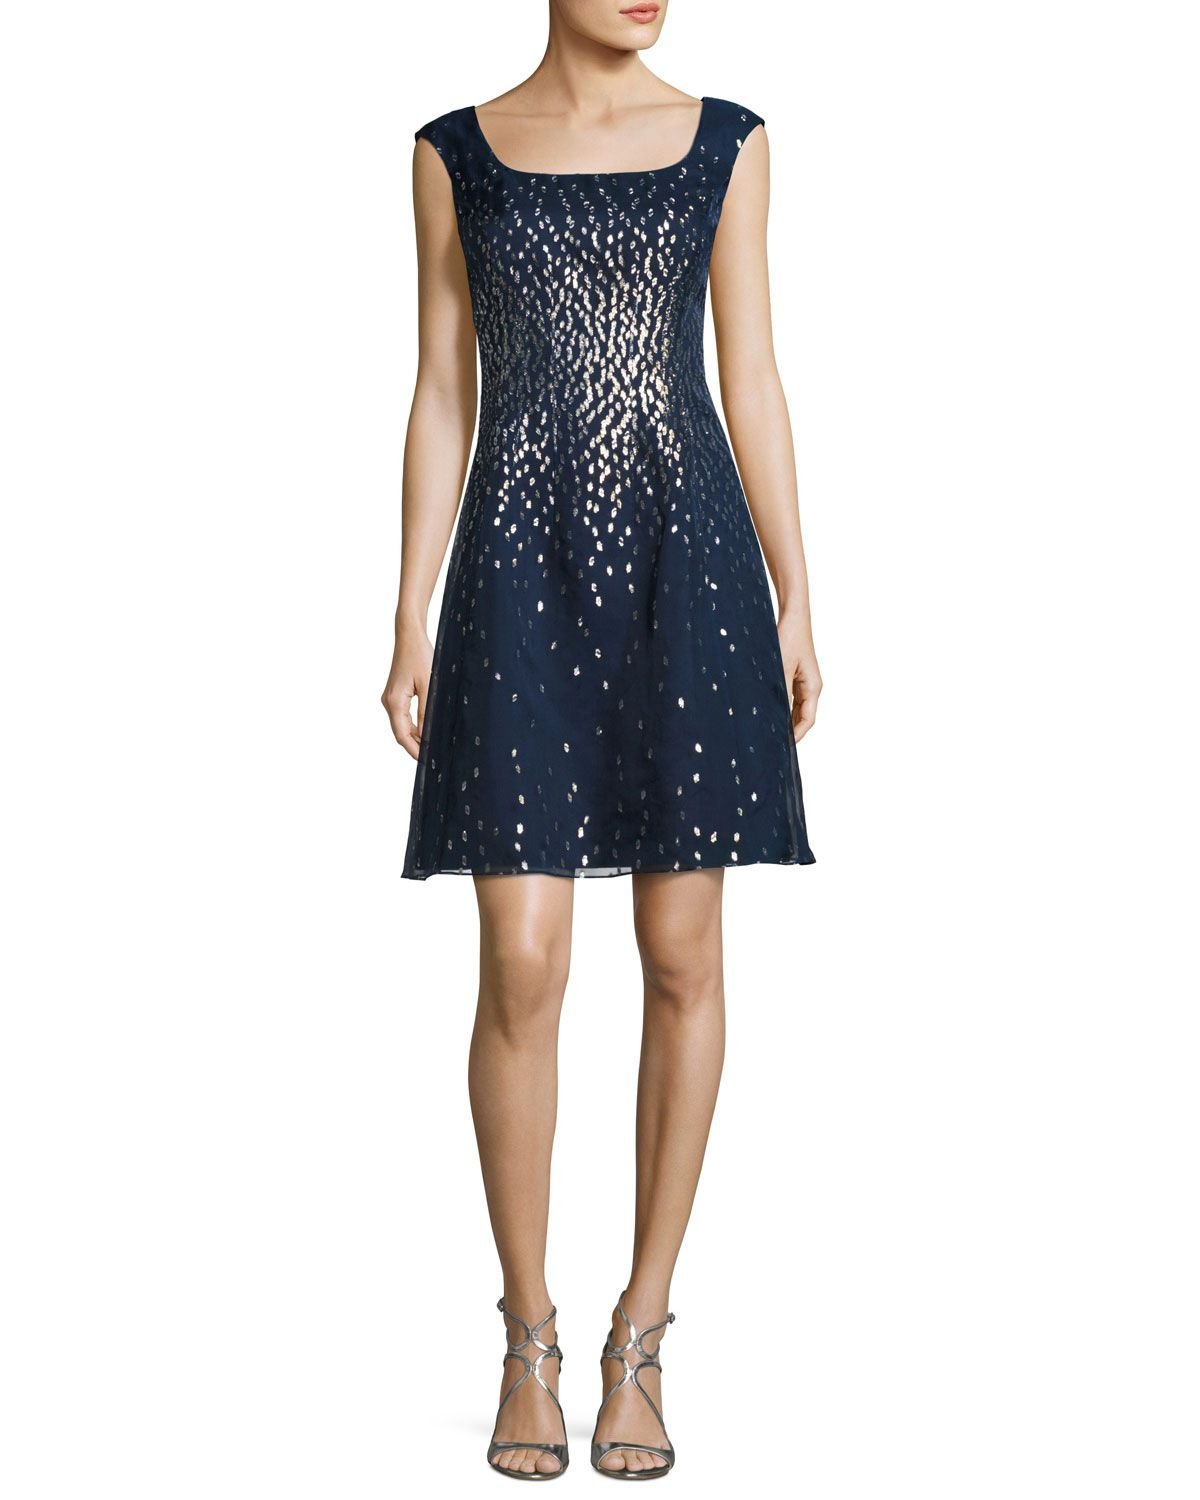 Kay unger new york embellished organza fitandflare dress navy